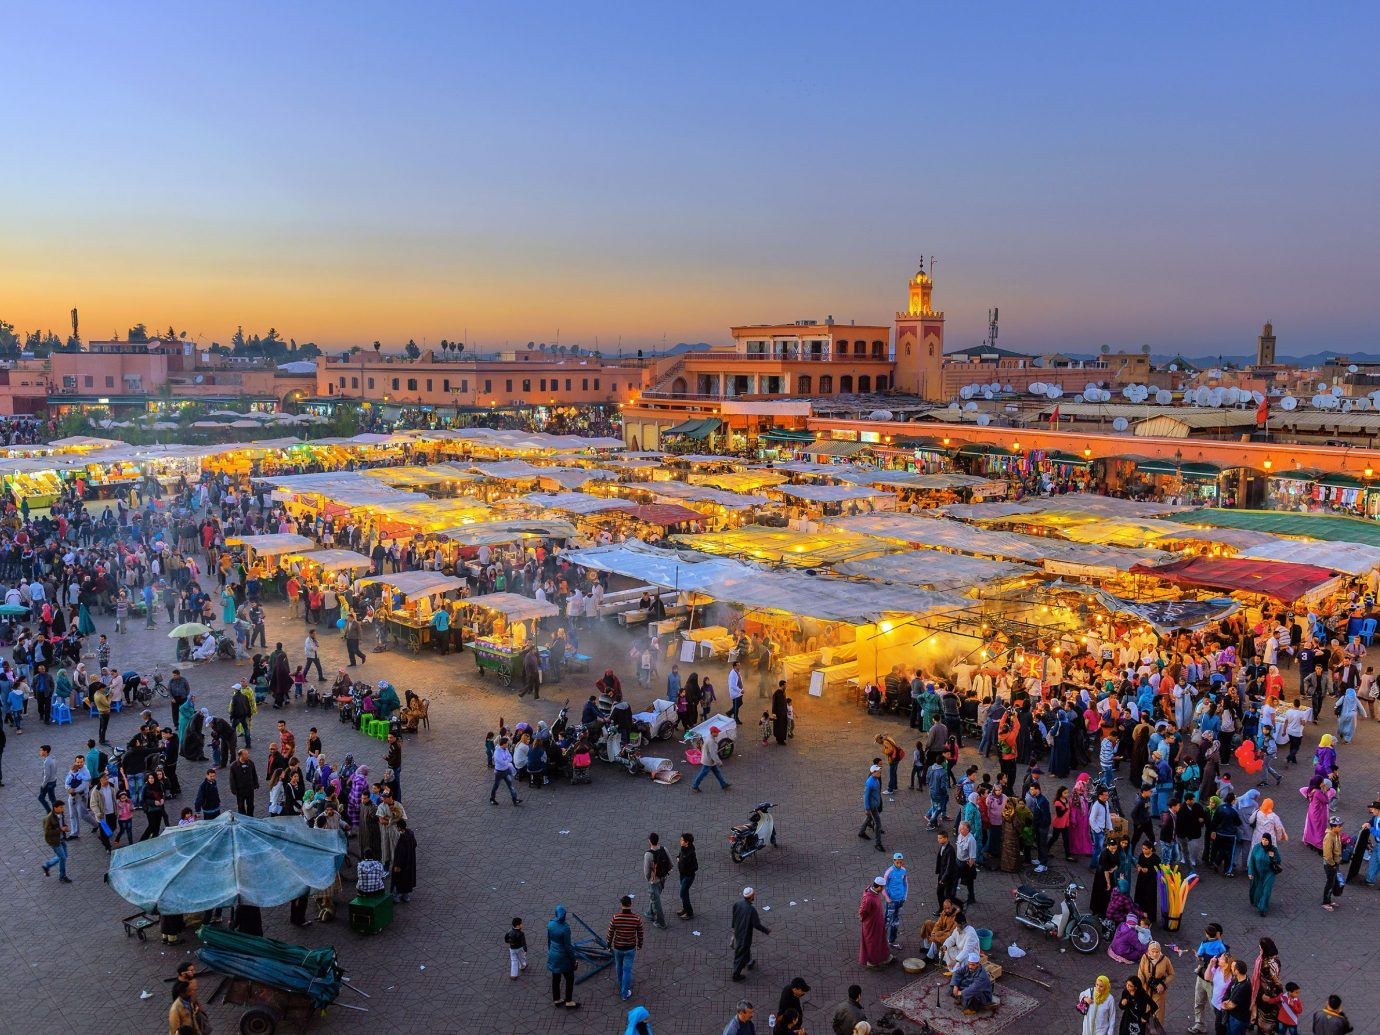 Trip Ideas sky outdoor people crowd person City Town group human settlement tourism cityscape evening many walkway town square line several